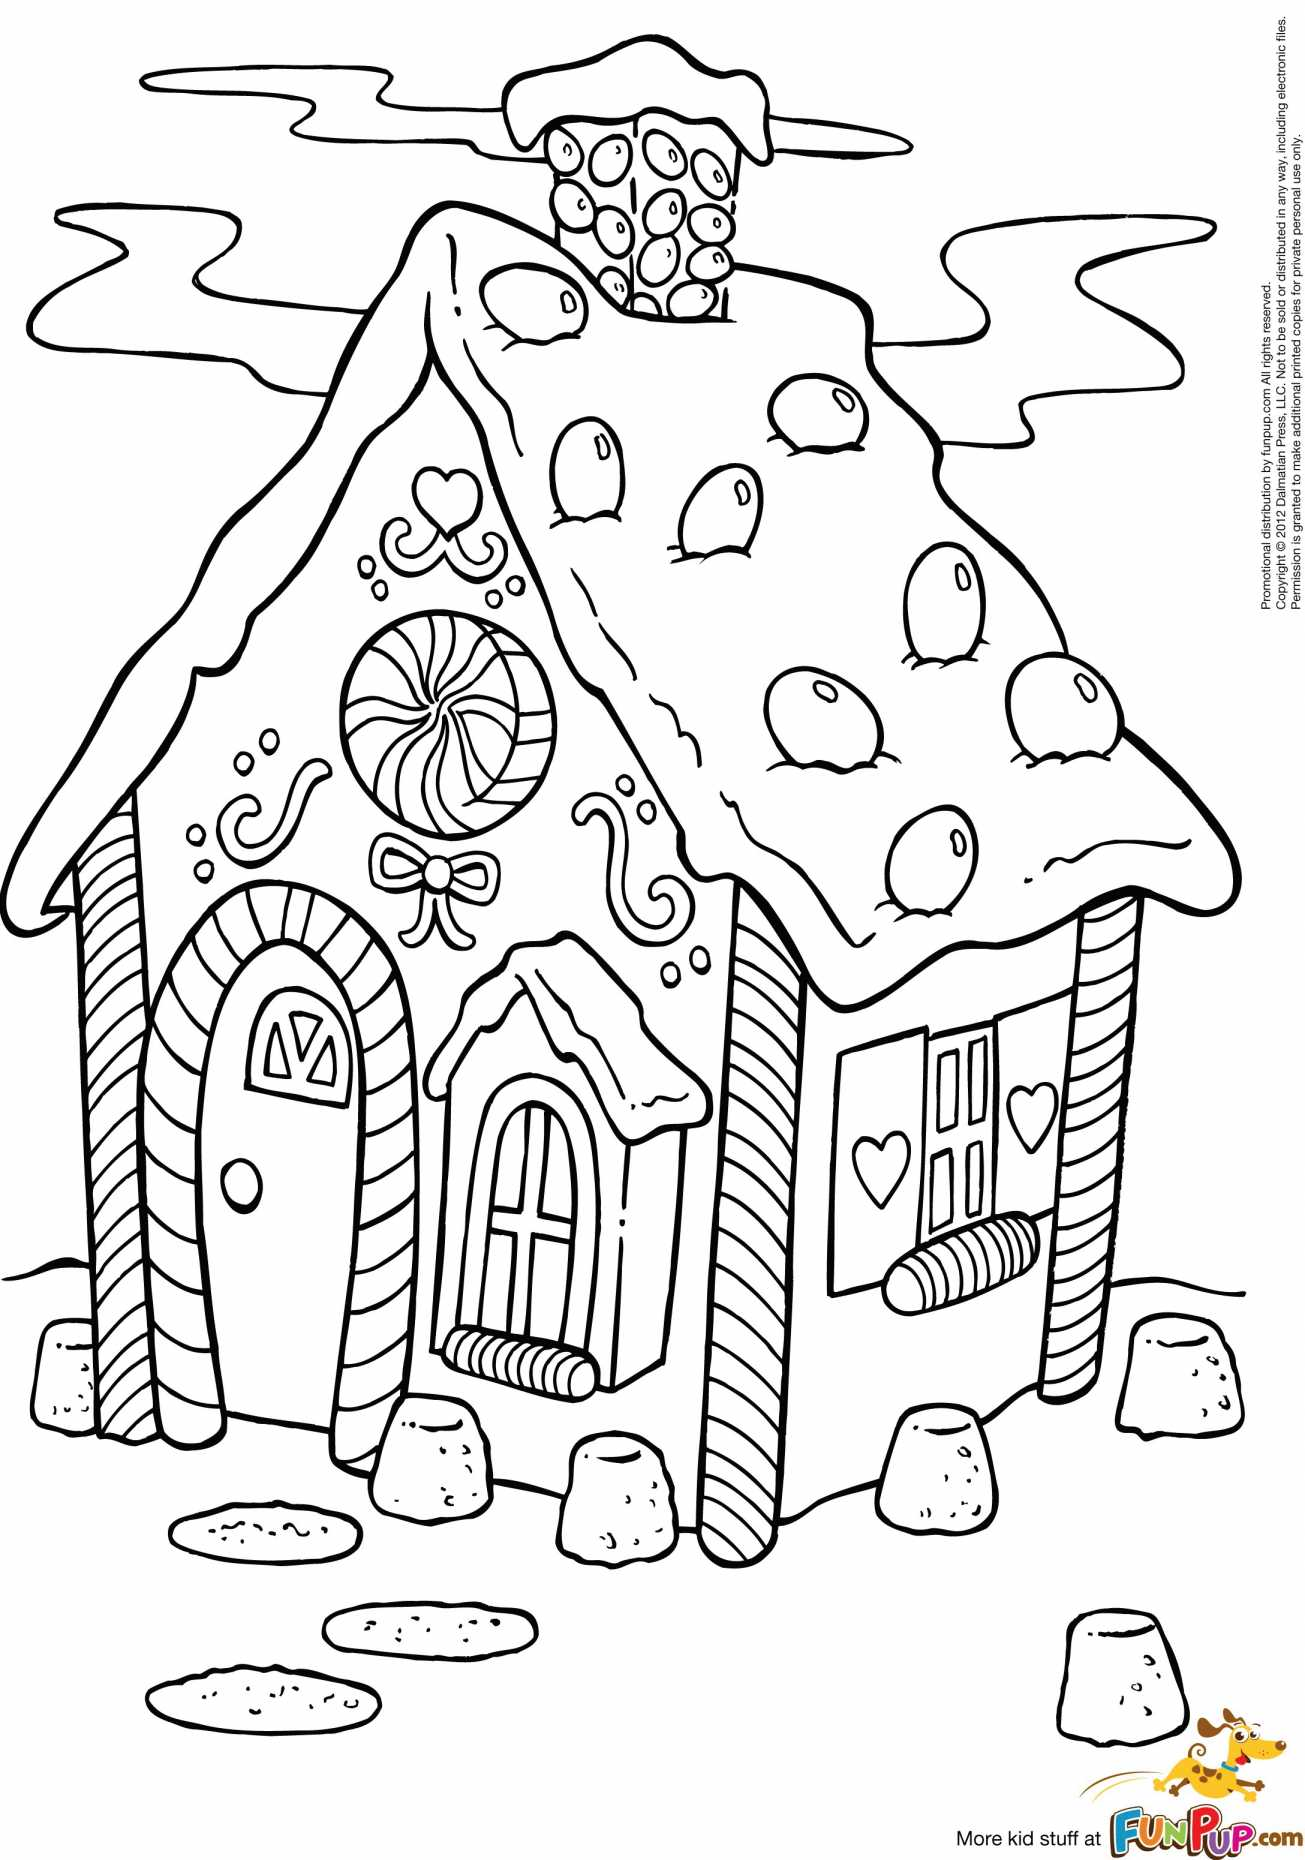 Christmas Coloring Pages House With Gingerbread For